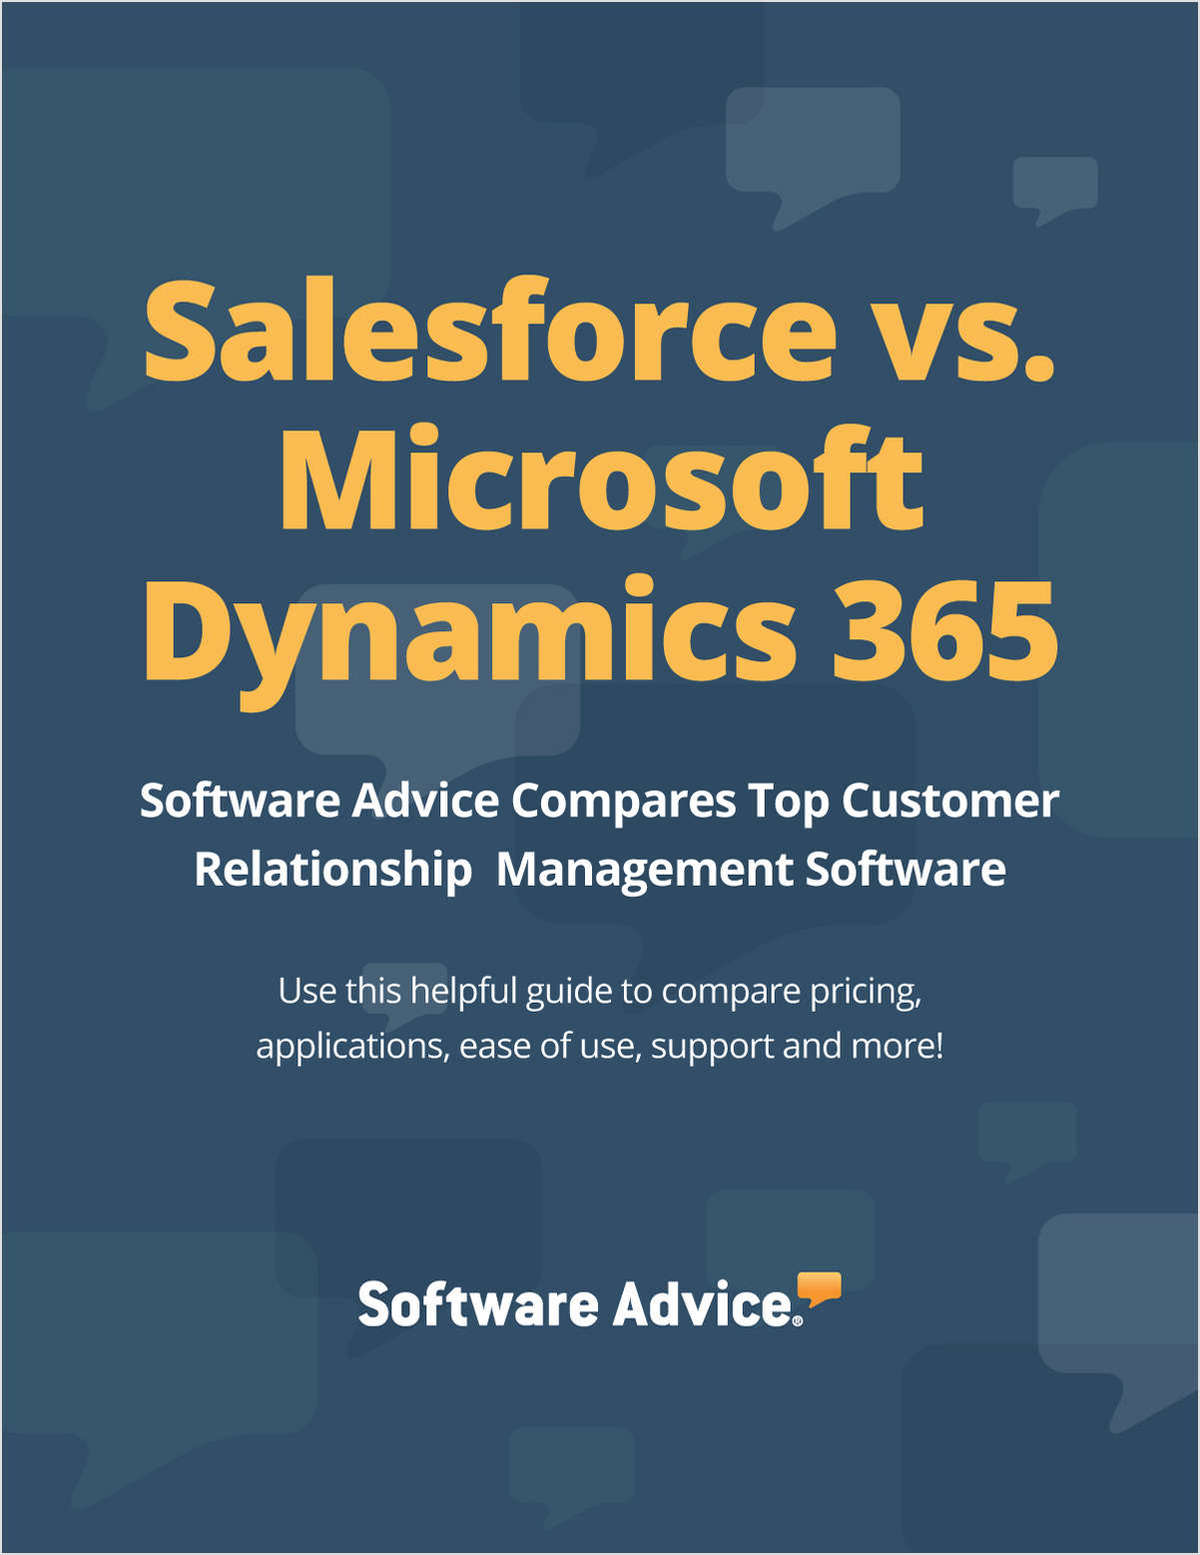 Salesforce vs. Microsoft Dynamics 365 - Compare Top Customer Relationship Management Software Systems